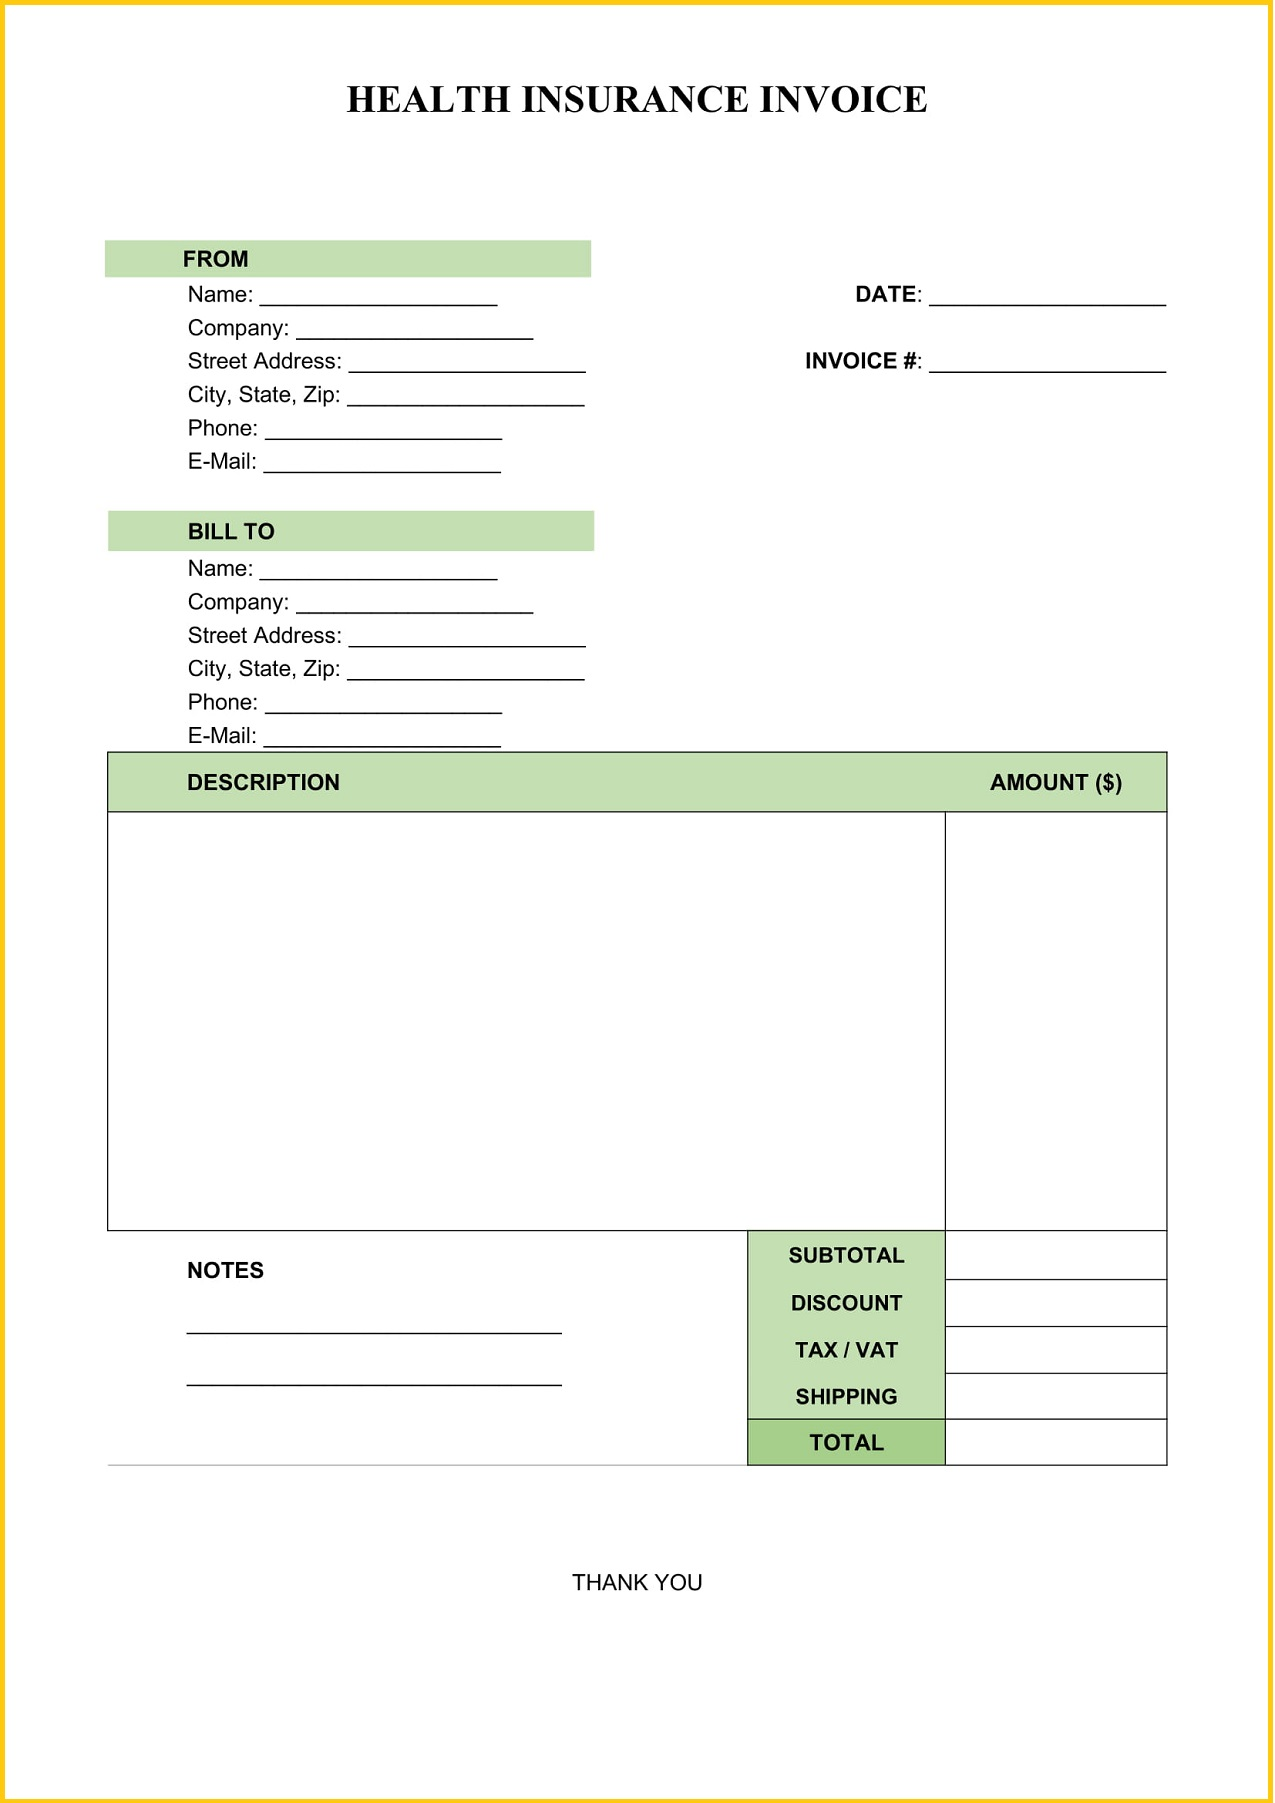 Health Insurance Invoice Template Word Form